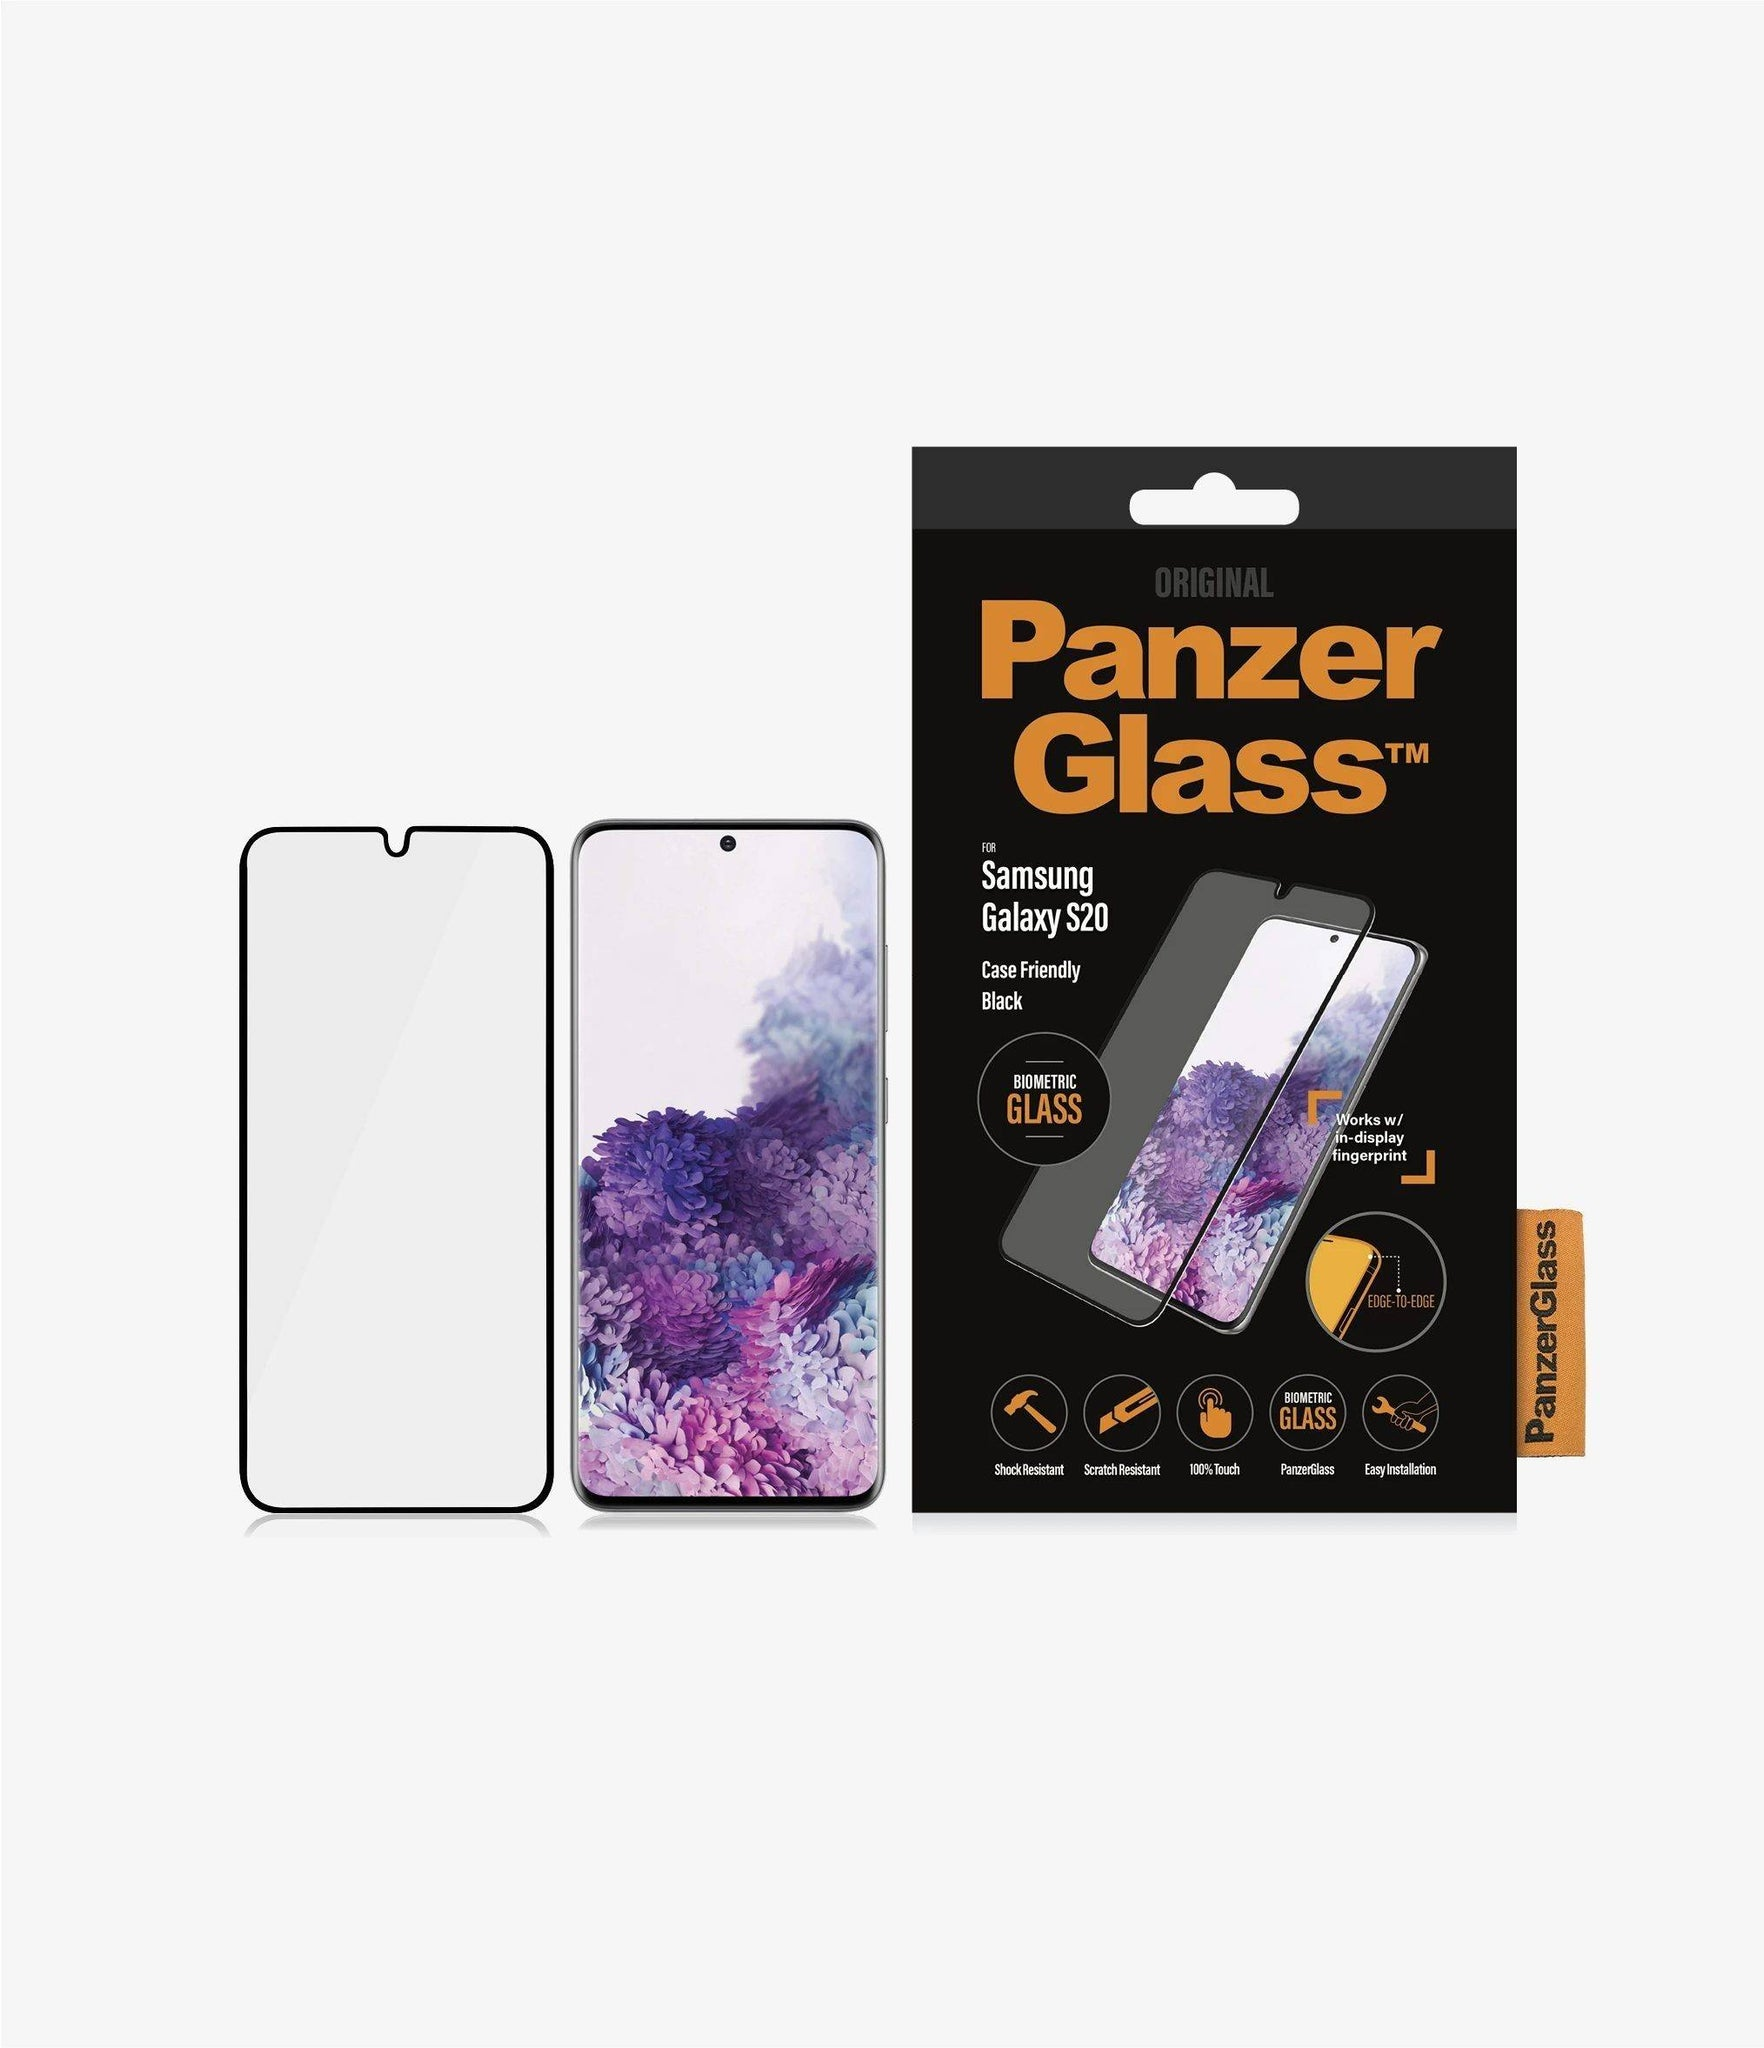 PanzerGlass - Samsung Galaxy S20 Screen Protector Biometric with Finger Prints - Black, PNZ7222 - 2071MALL